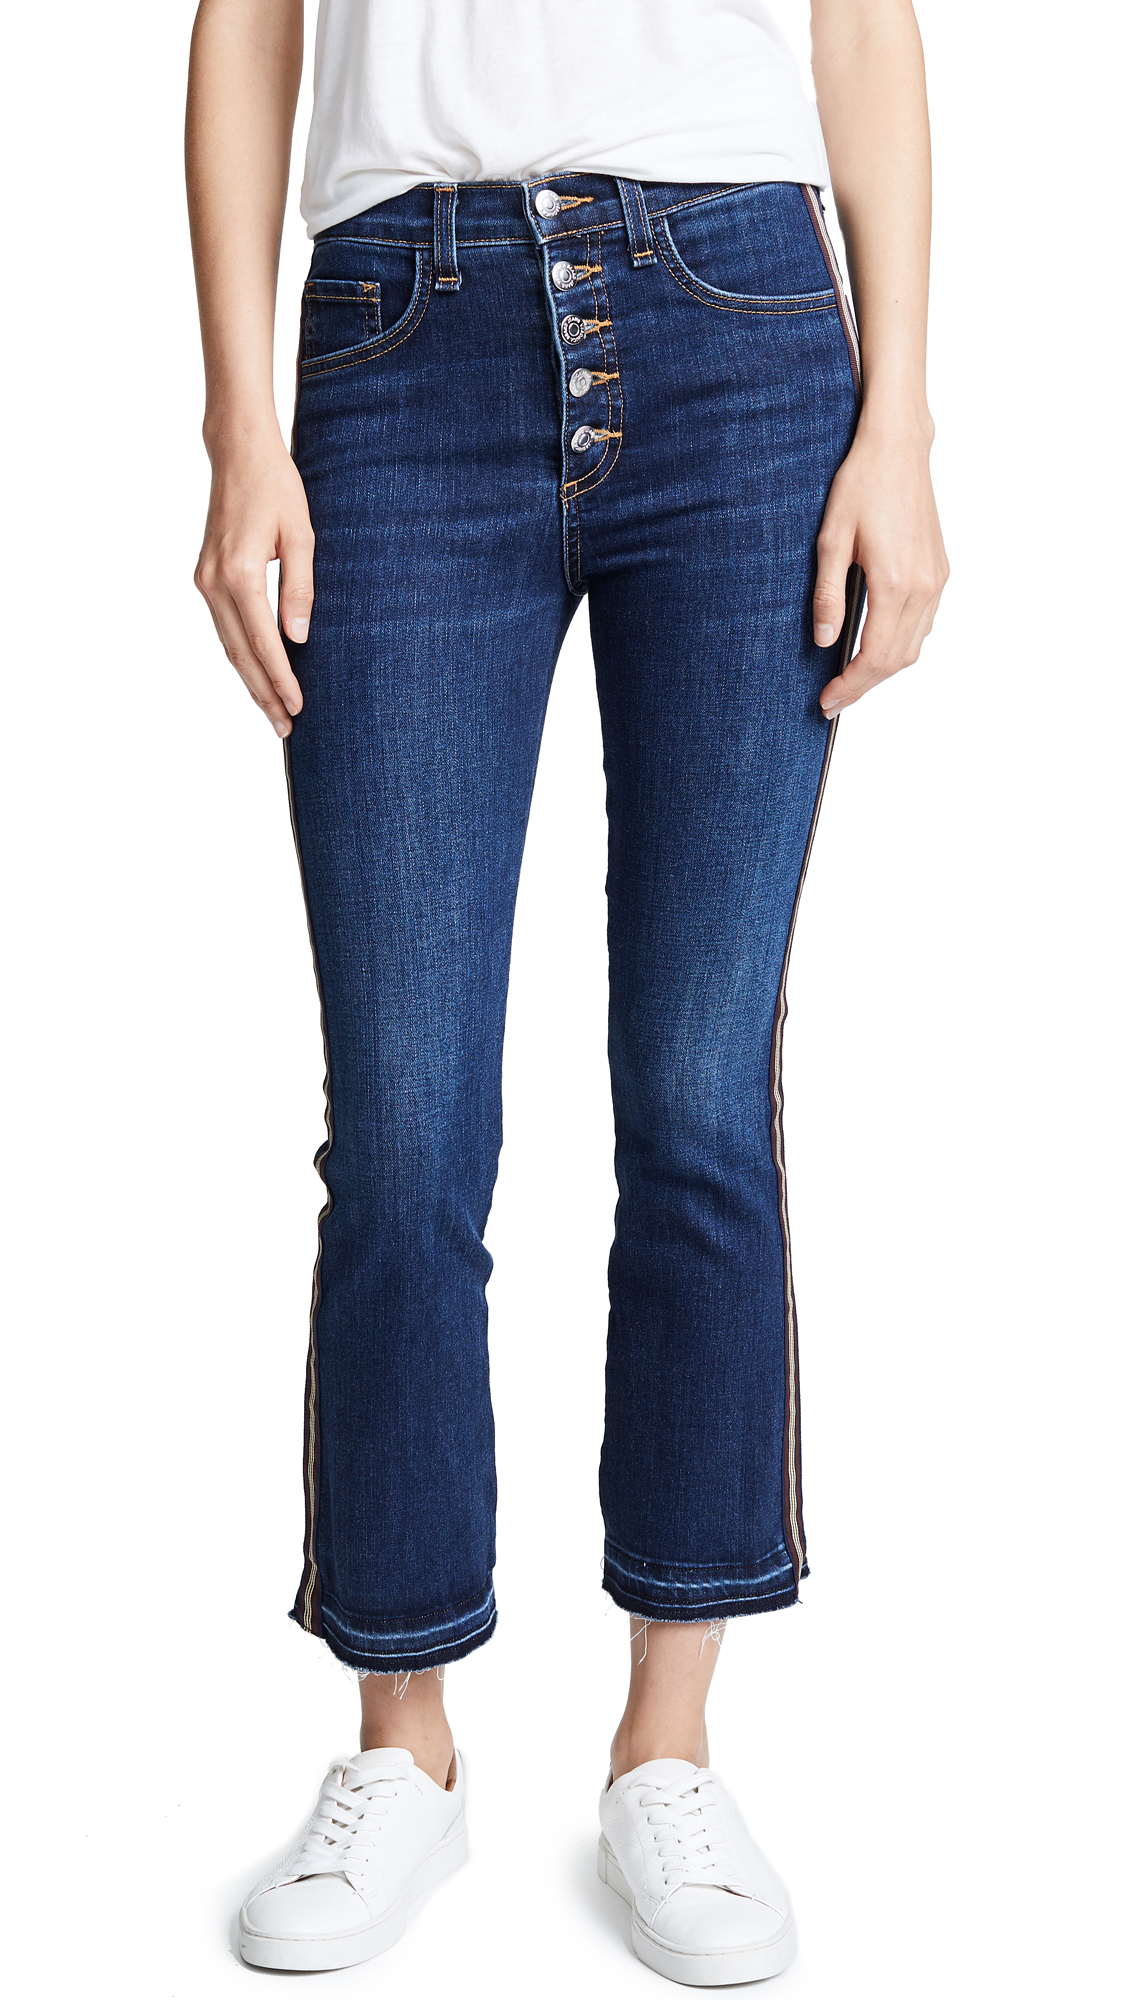 Carolyn Baby Boot Jeans, Bright Blue